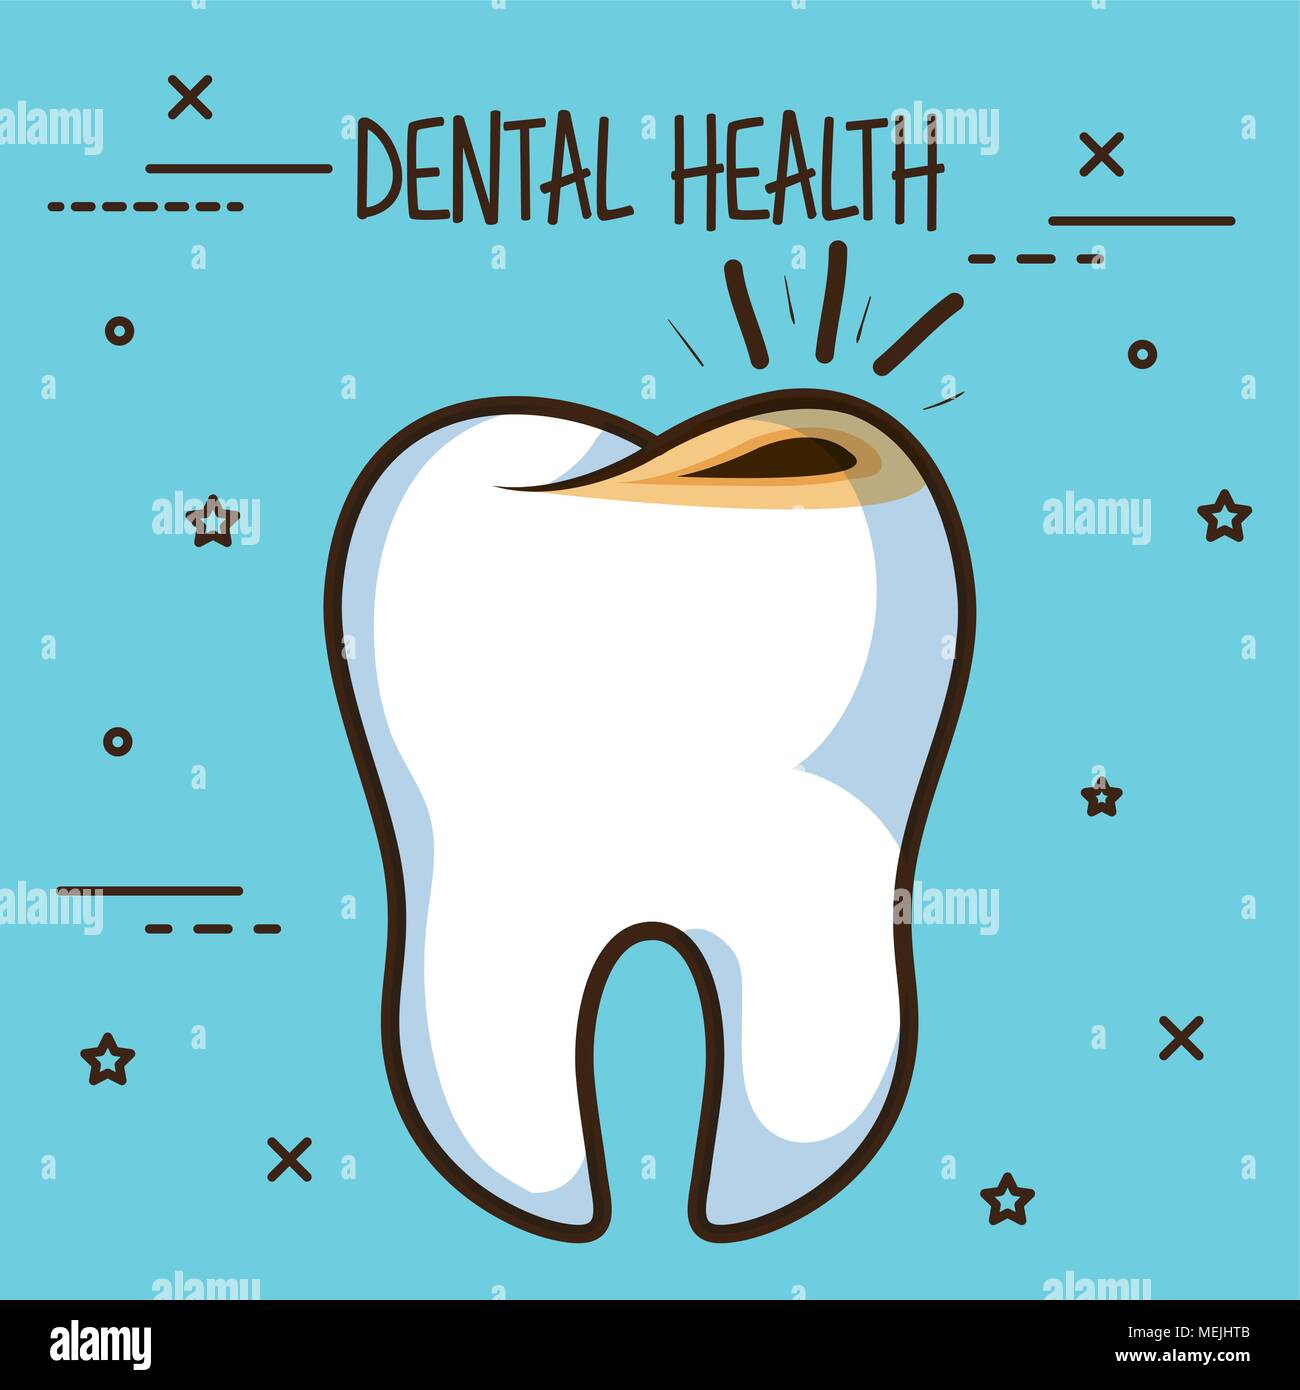 tooth with cavities dental care icon - Stock Image